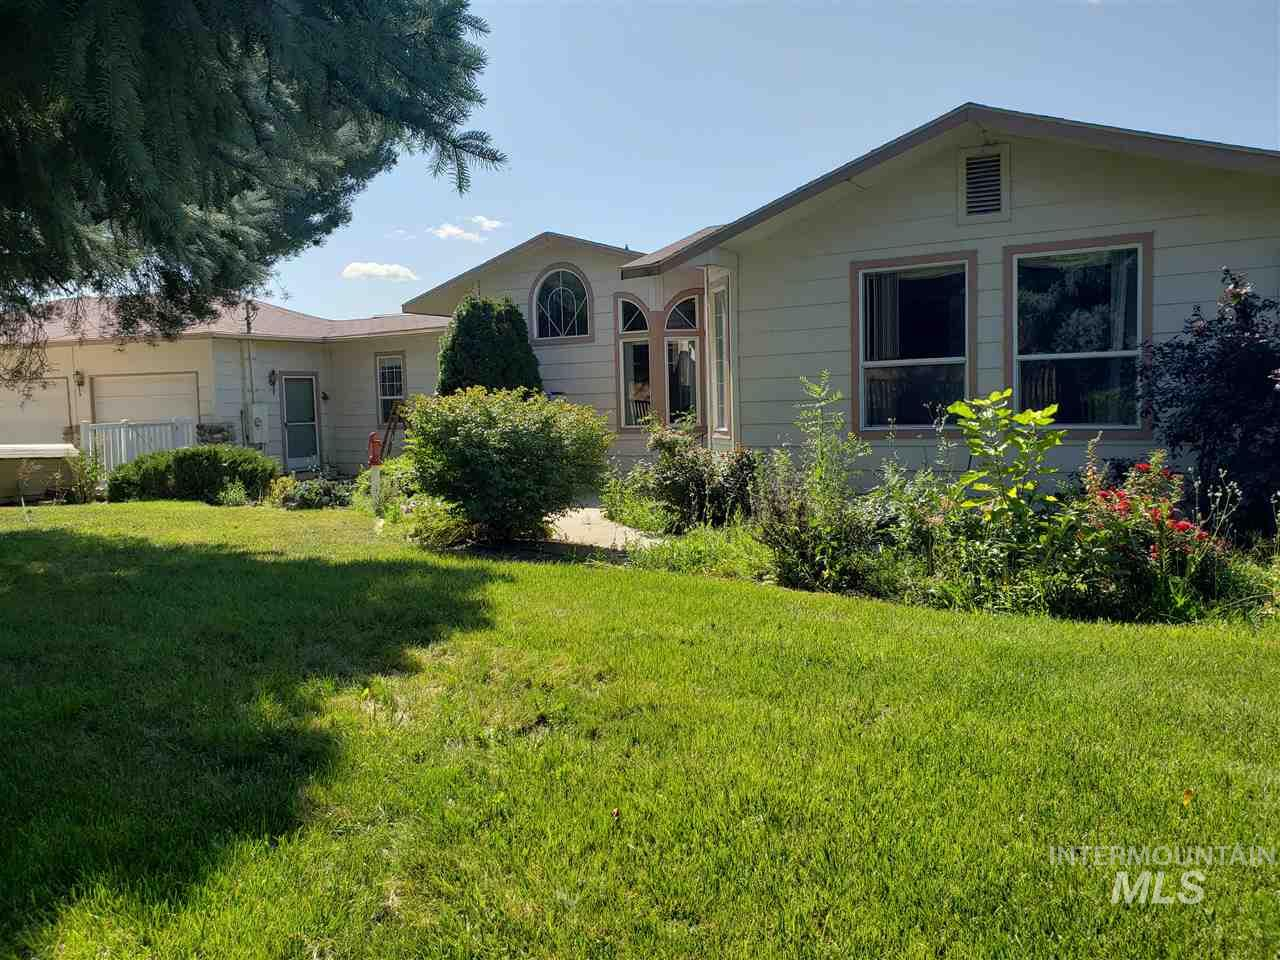 8201 Foothill Rd, Middleton, ID 83644